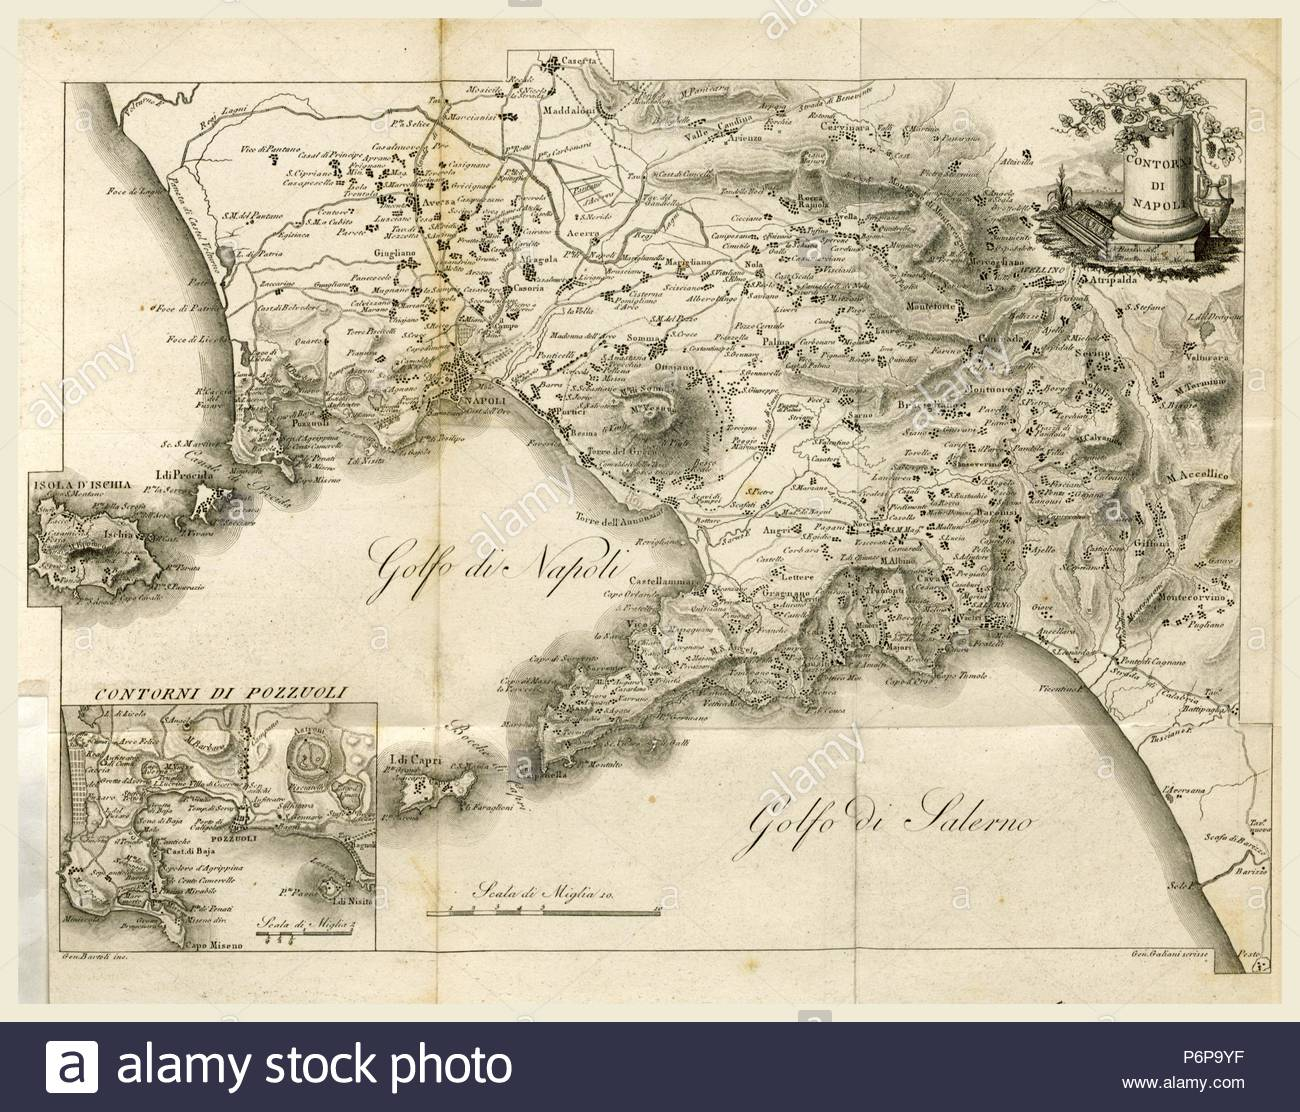 Map of Napels, Golf of Napels, Napoli e Contorni, Editore L. Galanti, Italy, 19th century engraving. - Stock Image